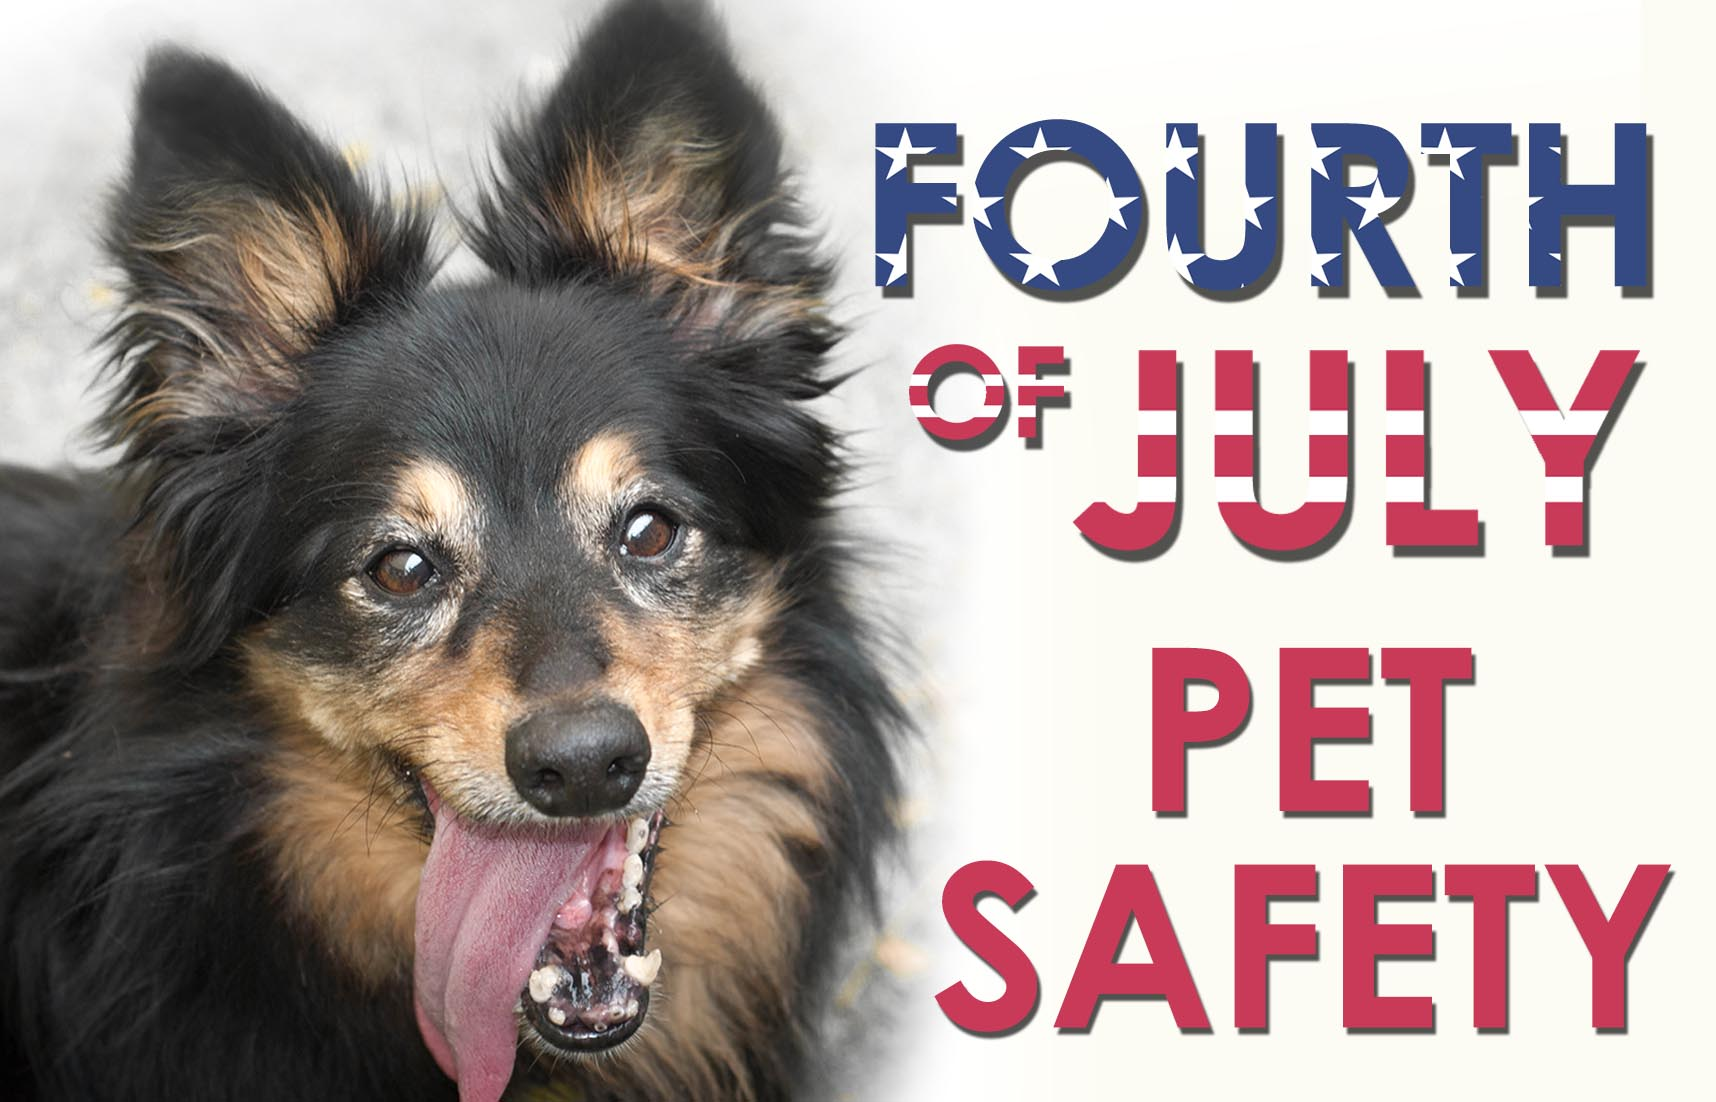 fourth.july.pet.safety.2017.jpg